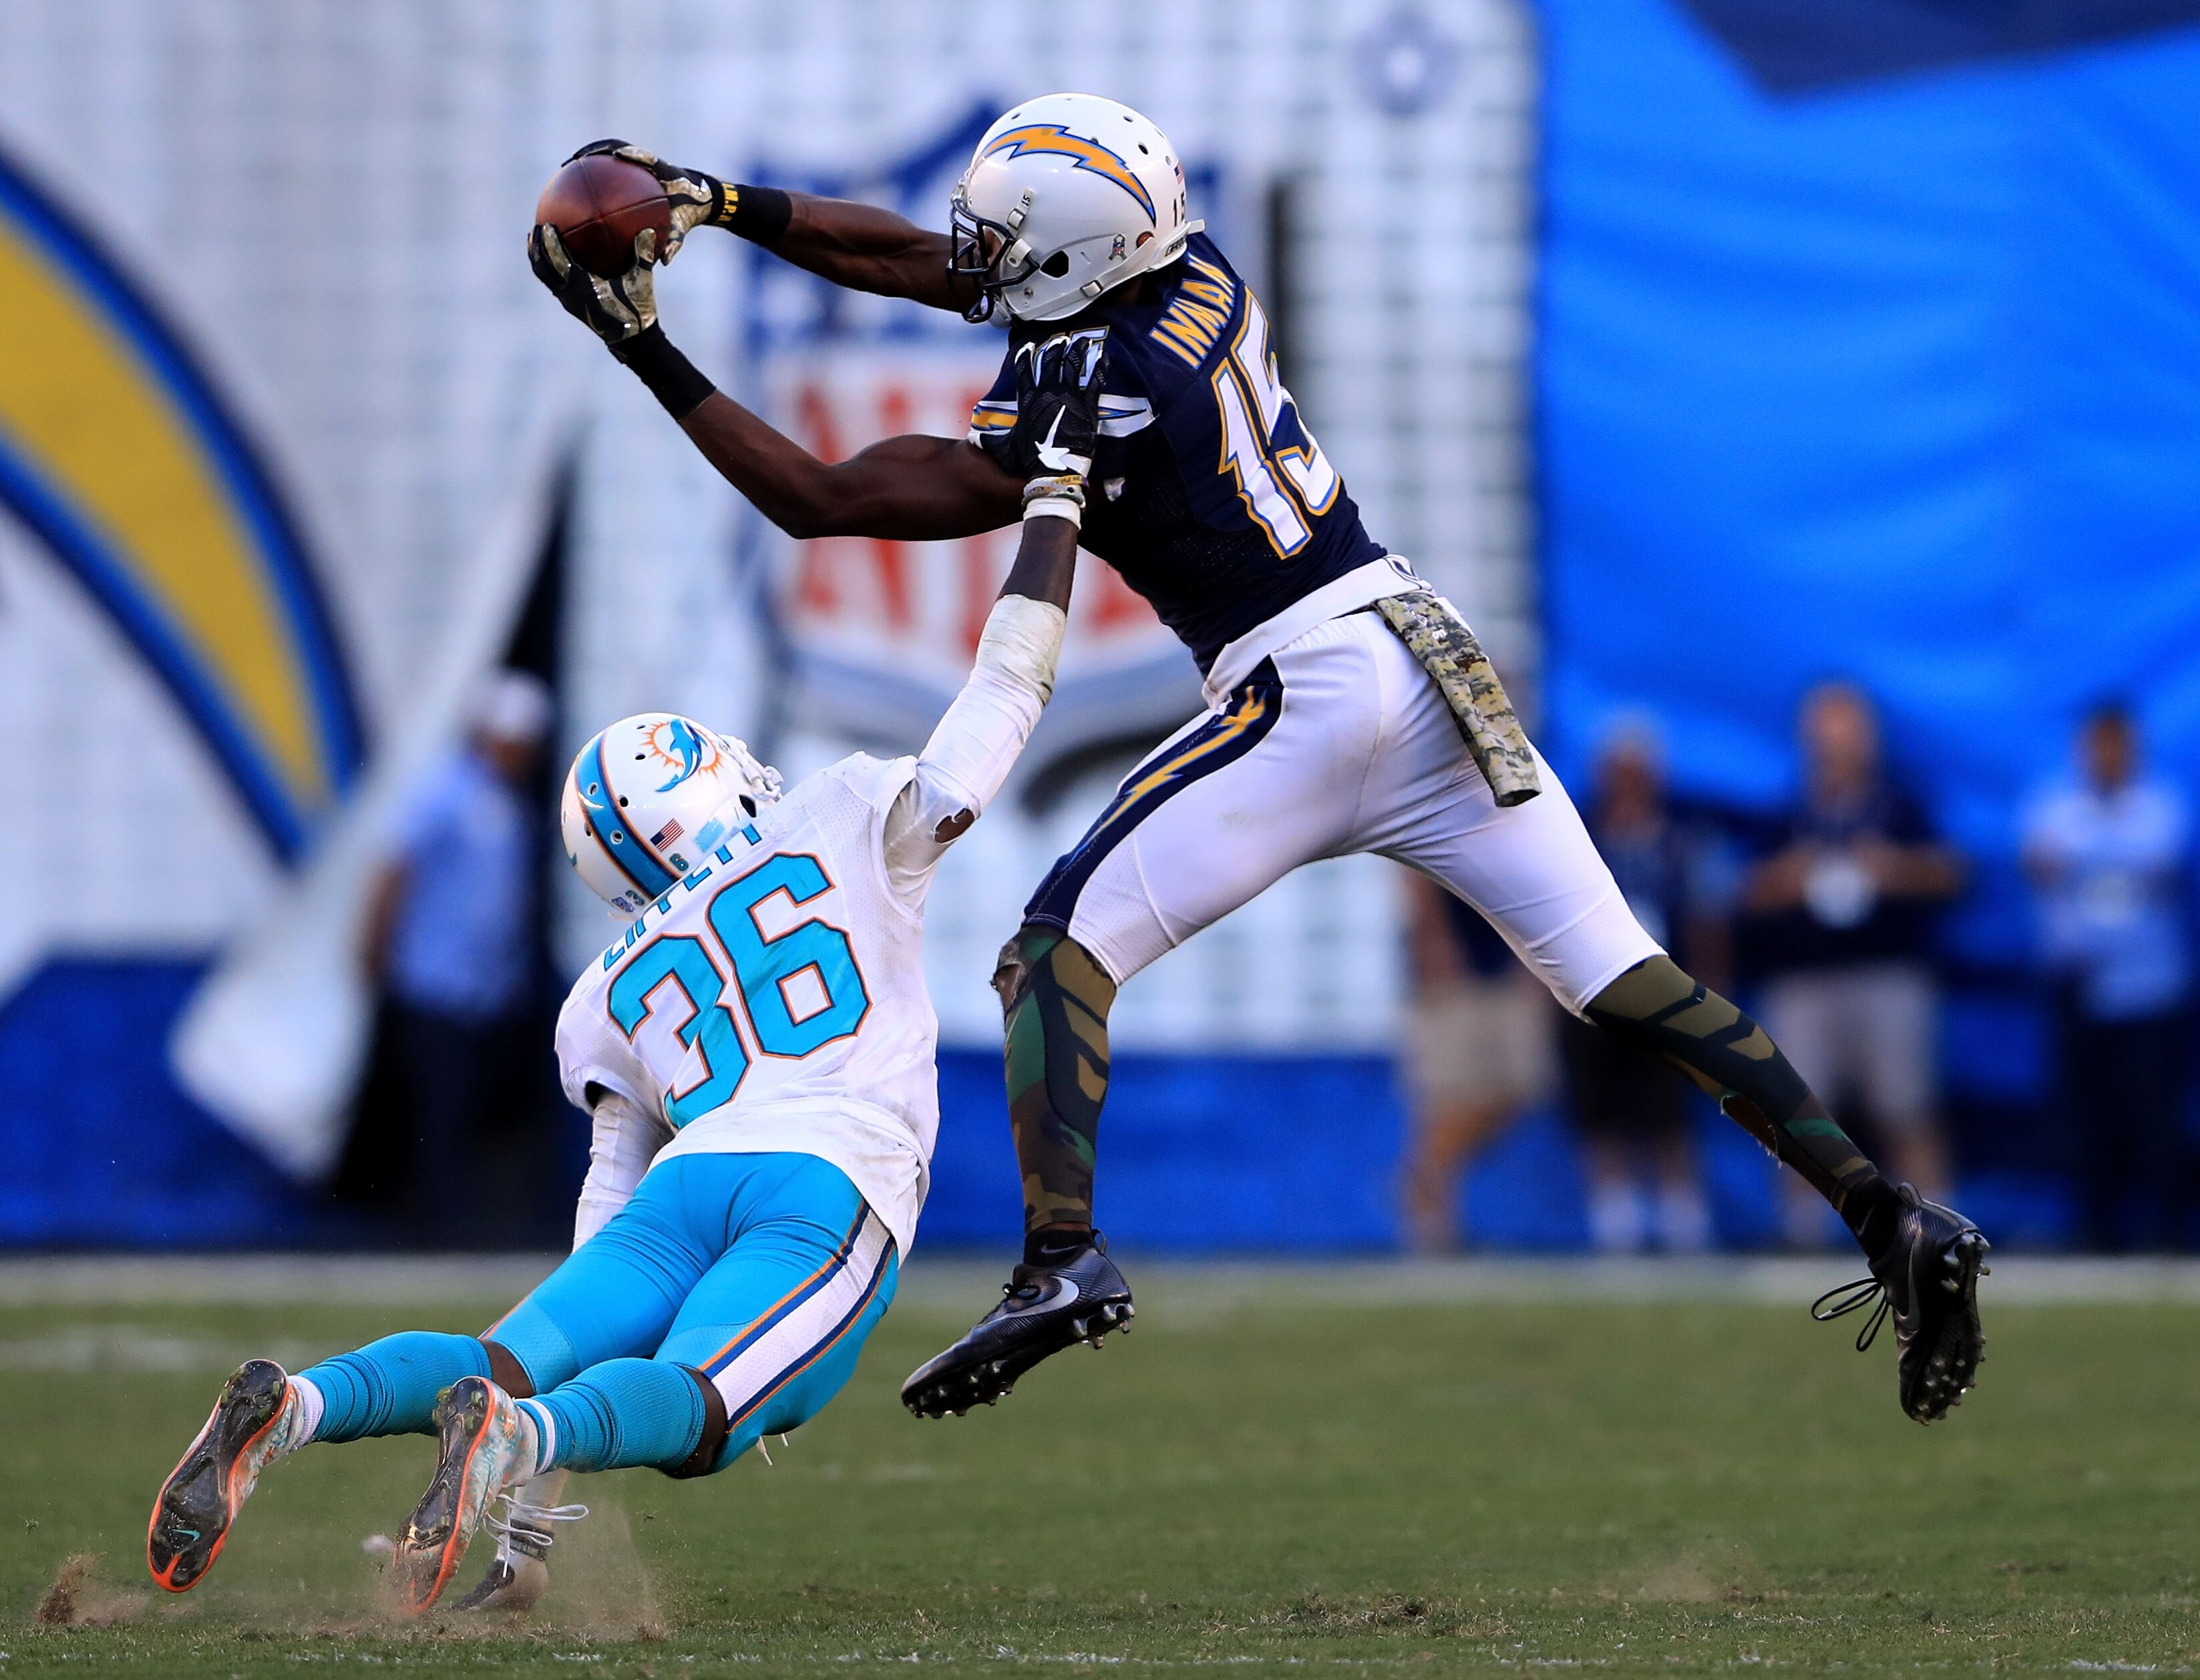 623049758-miami-dolphins-v-san-diego-chargers.jpg